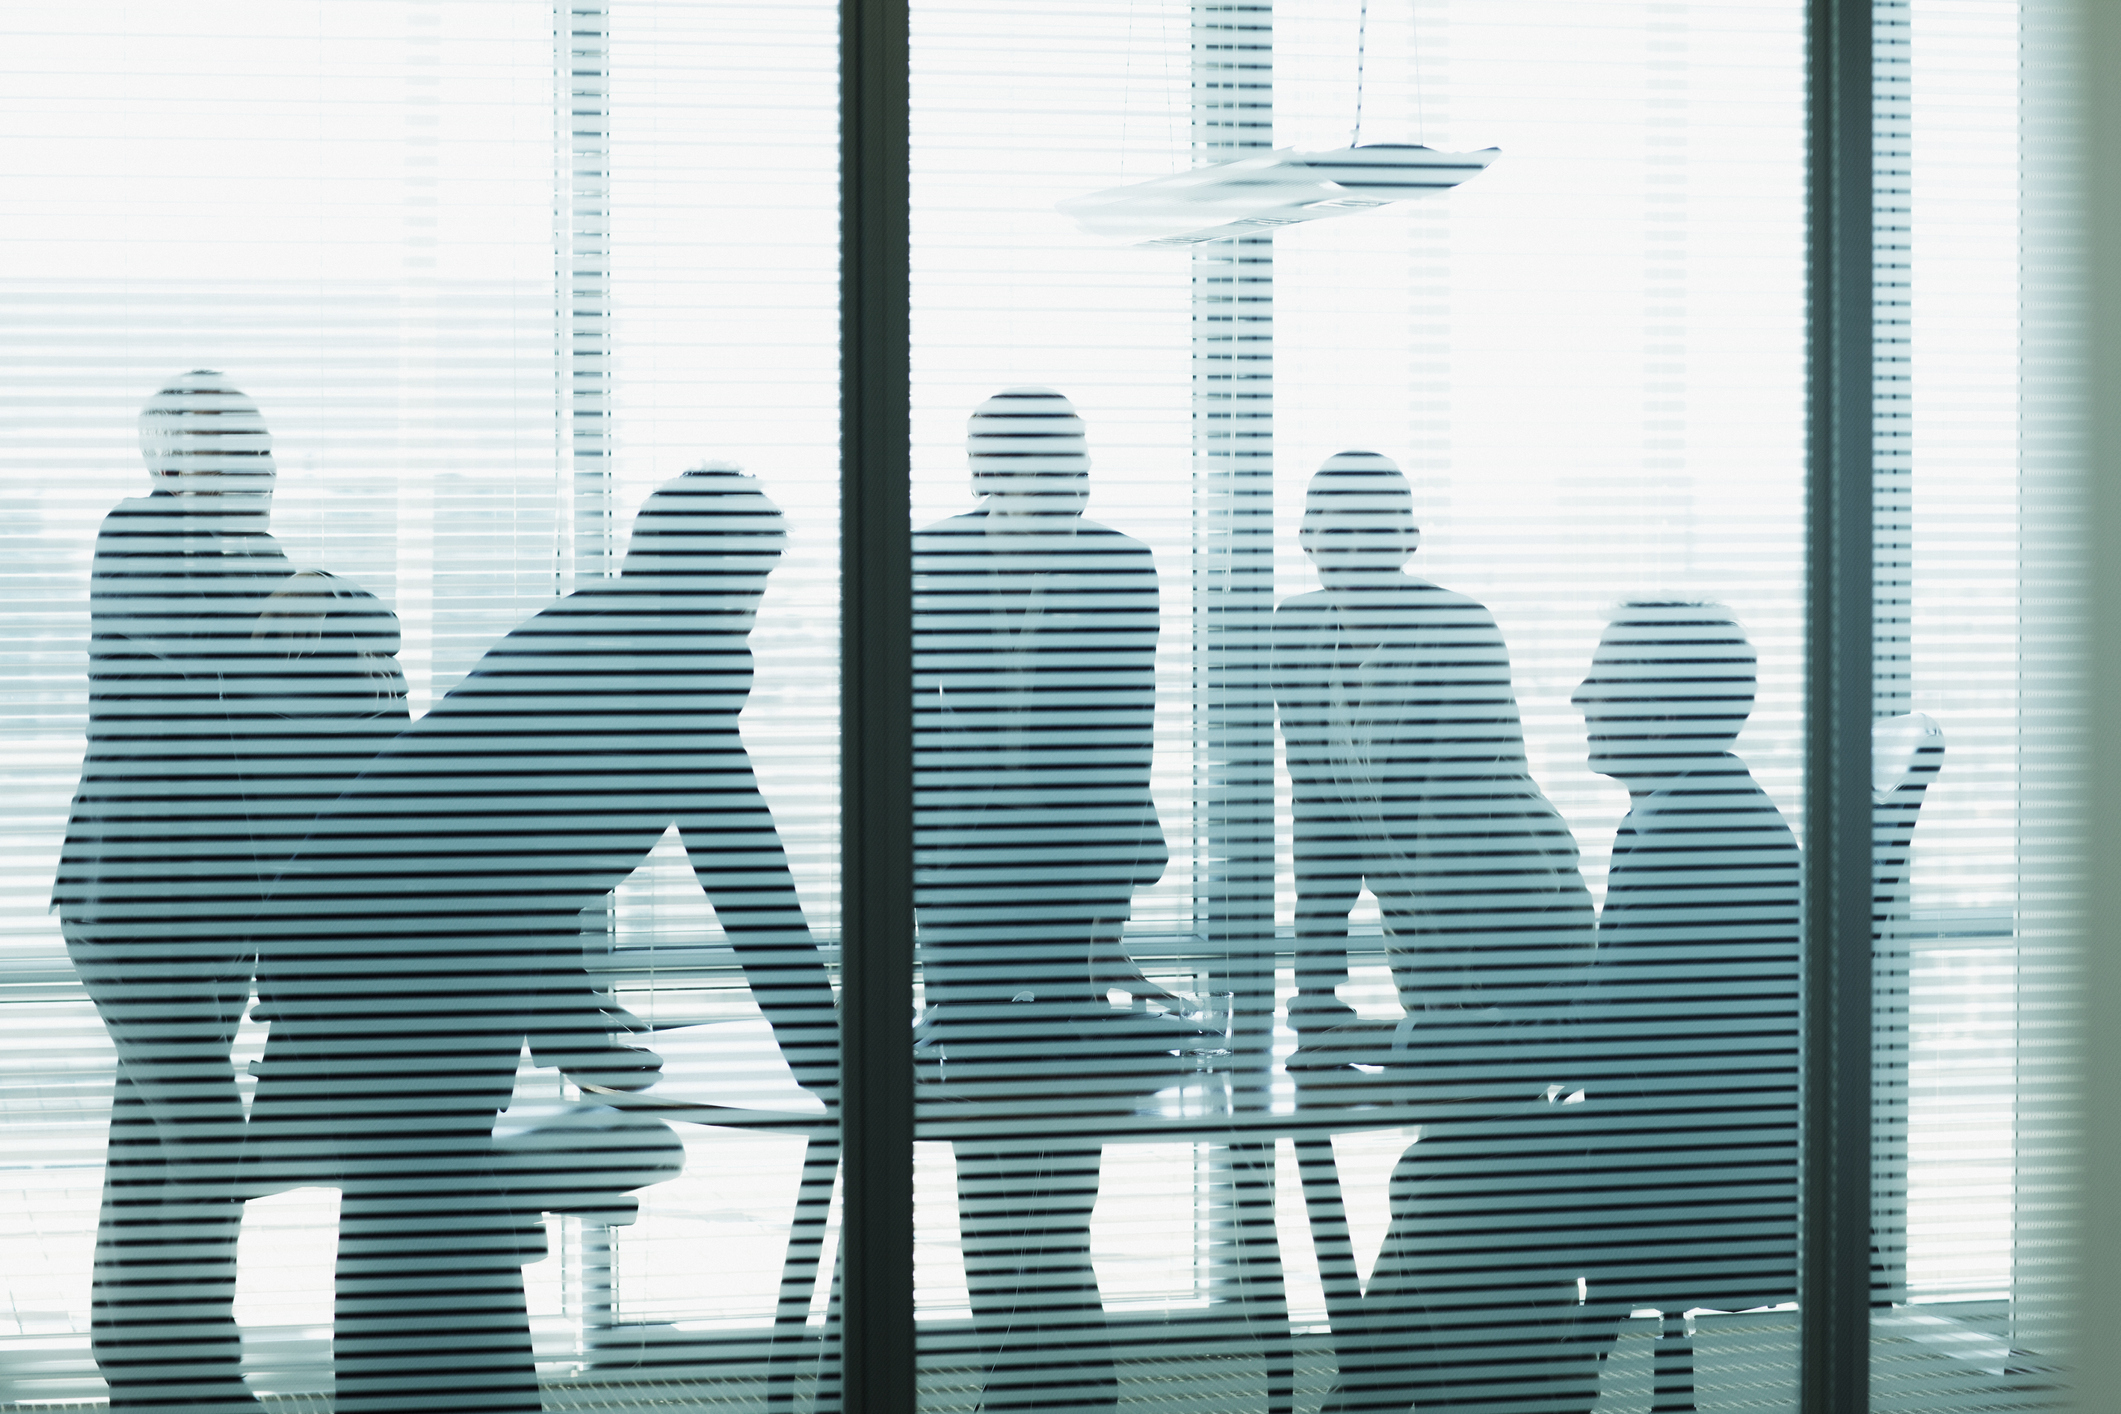 Executive career and firm outcomes linked to extraversion